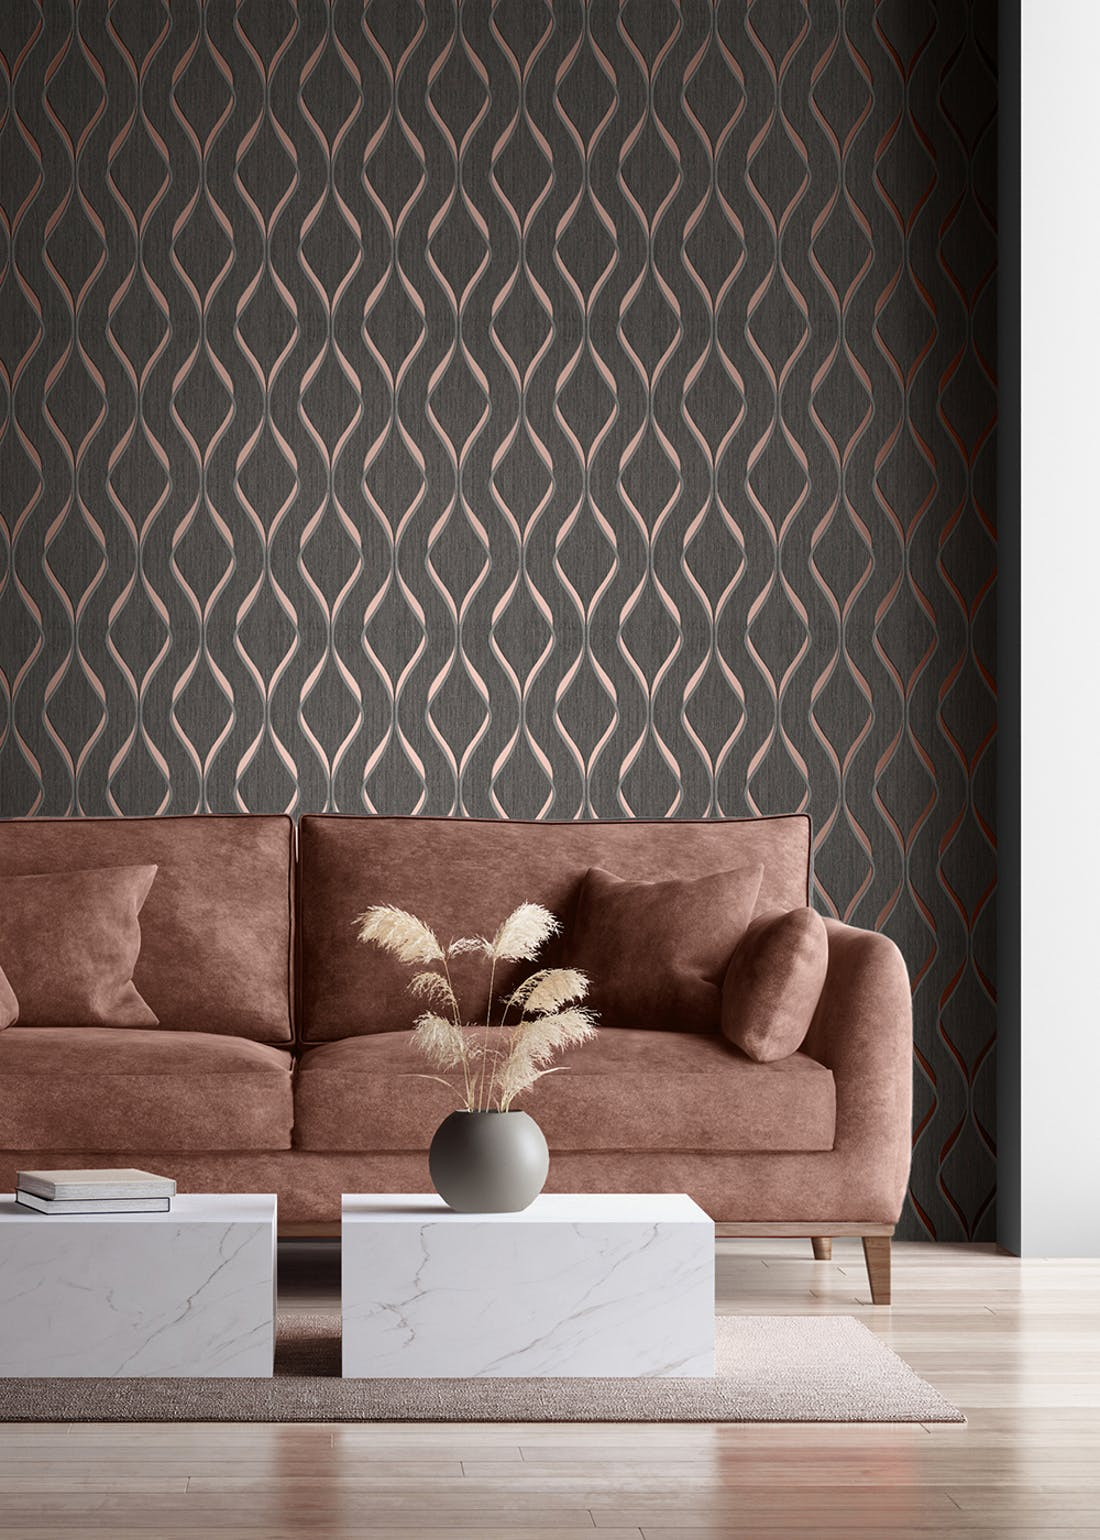 Muriva Indra Wave Rose Wallpaper (10.05m x 53cm)